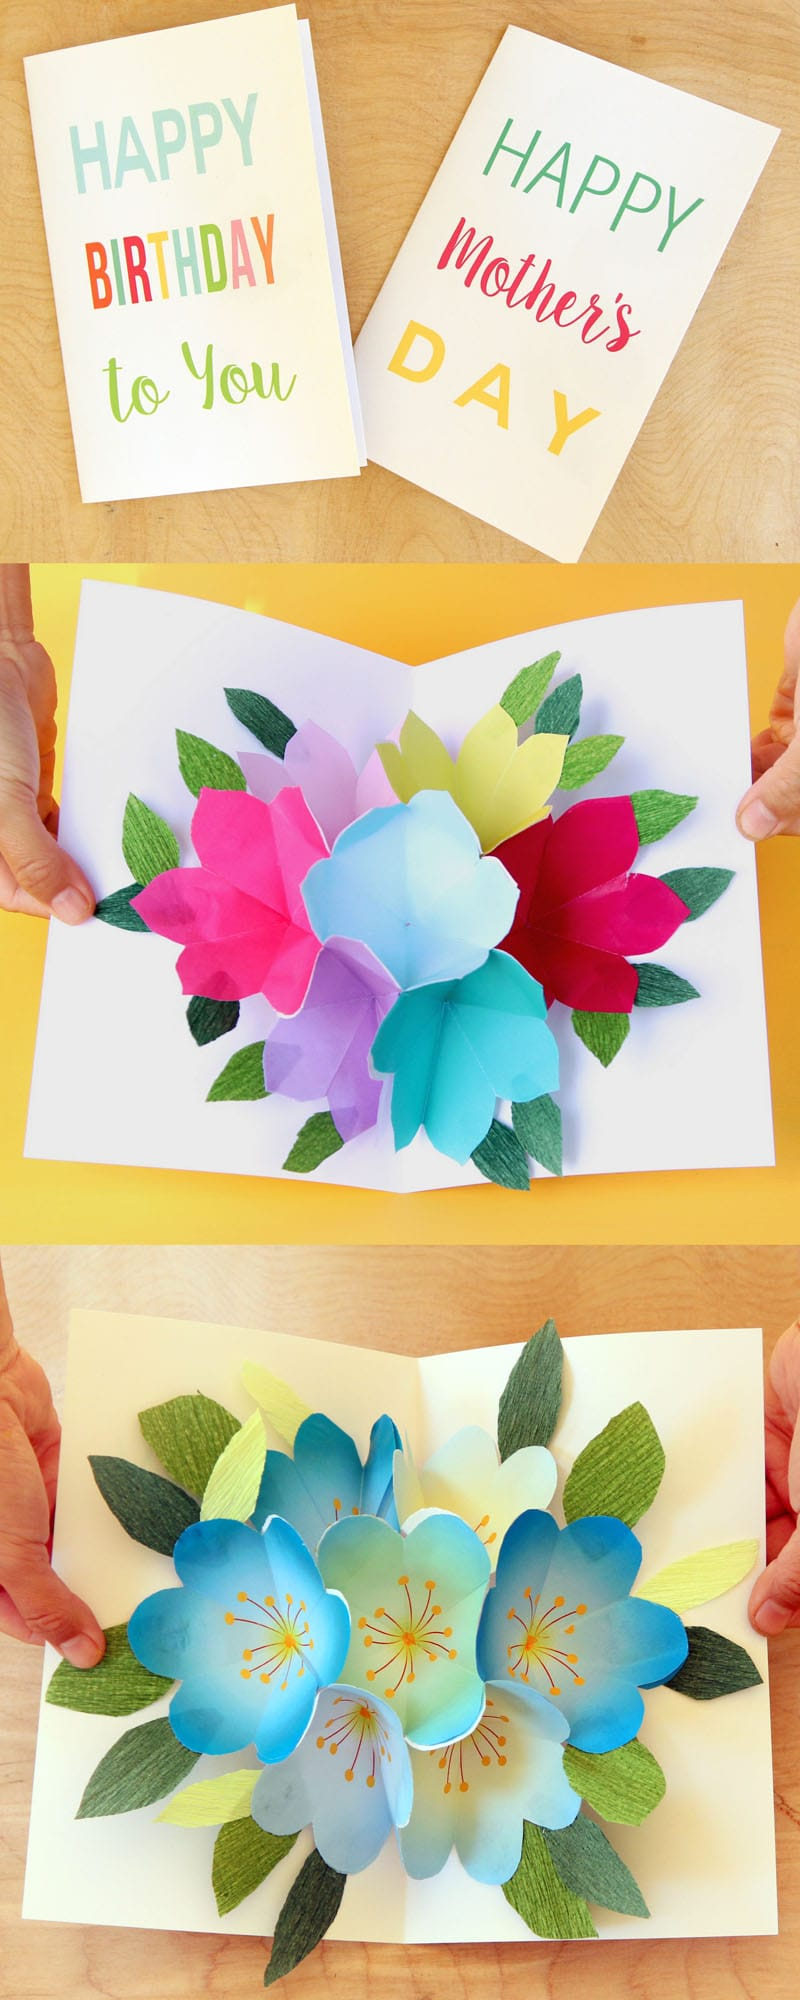 Free printable happy birthday card with pop up bouquet a piece of you can make this easy and free printable birthday card in less than an hour oh and the best part a big bouquet pops right out when your loved one opens m4hsunfo